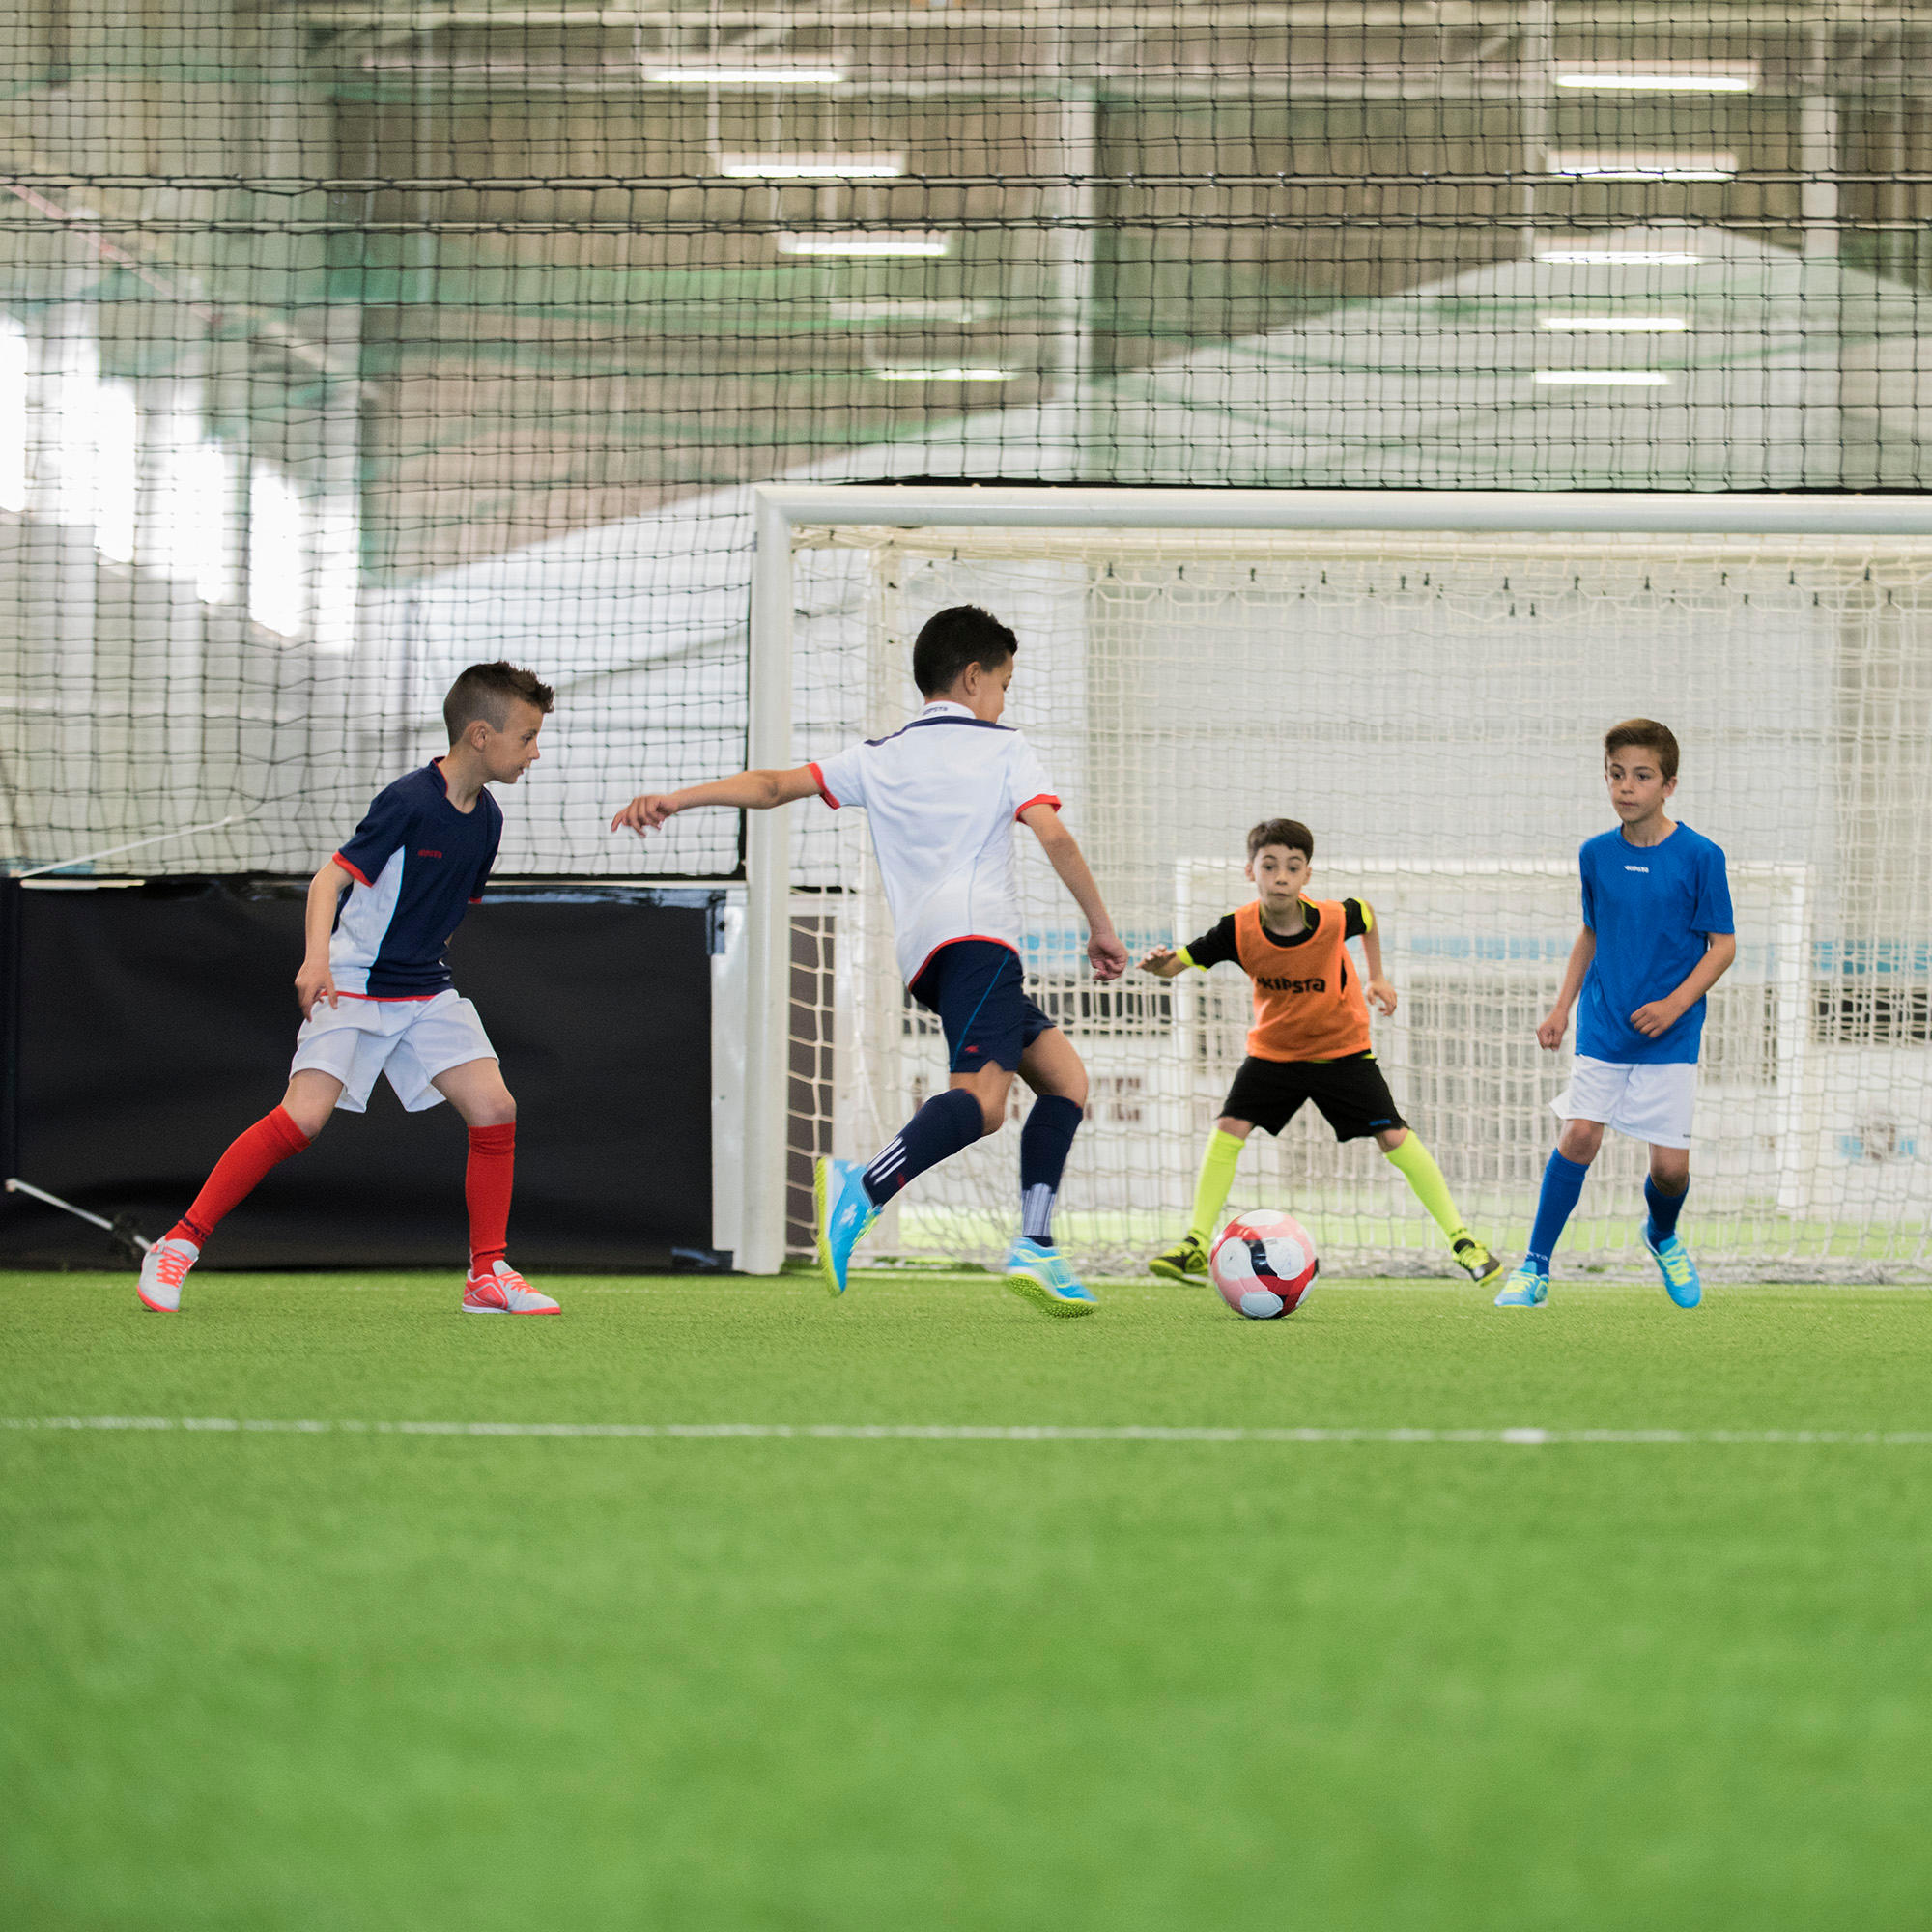 Learn How to Play Football in 9 Steps (With Videos) - Decathlon